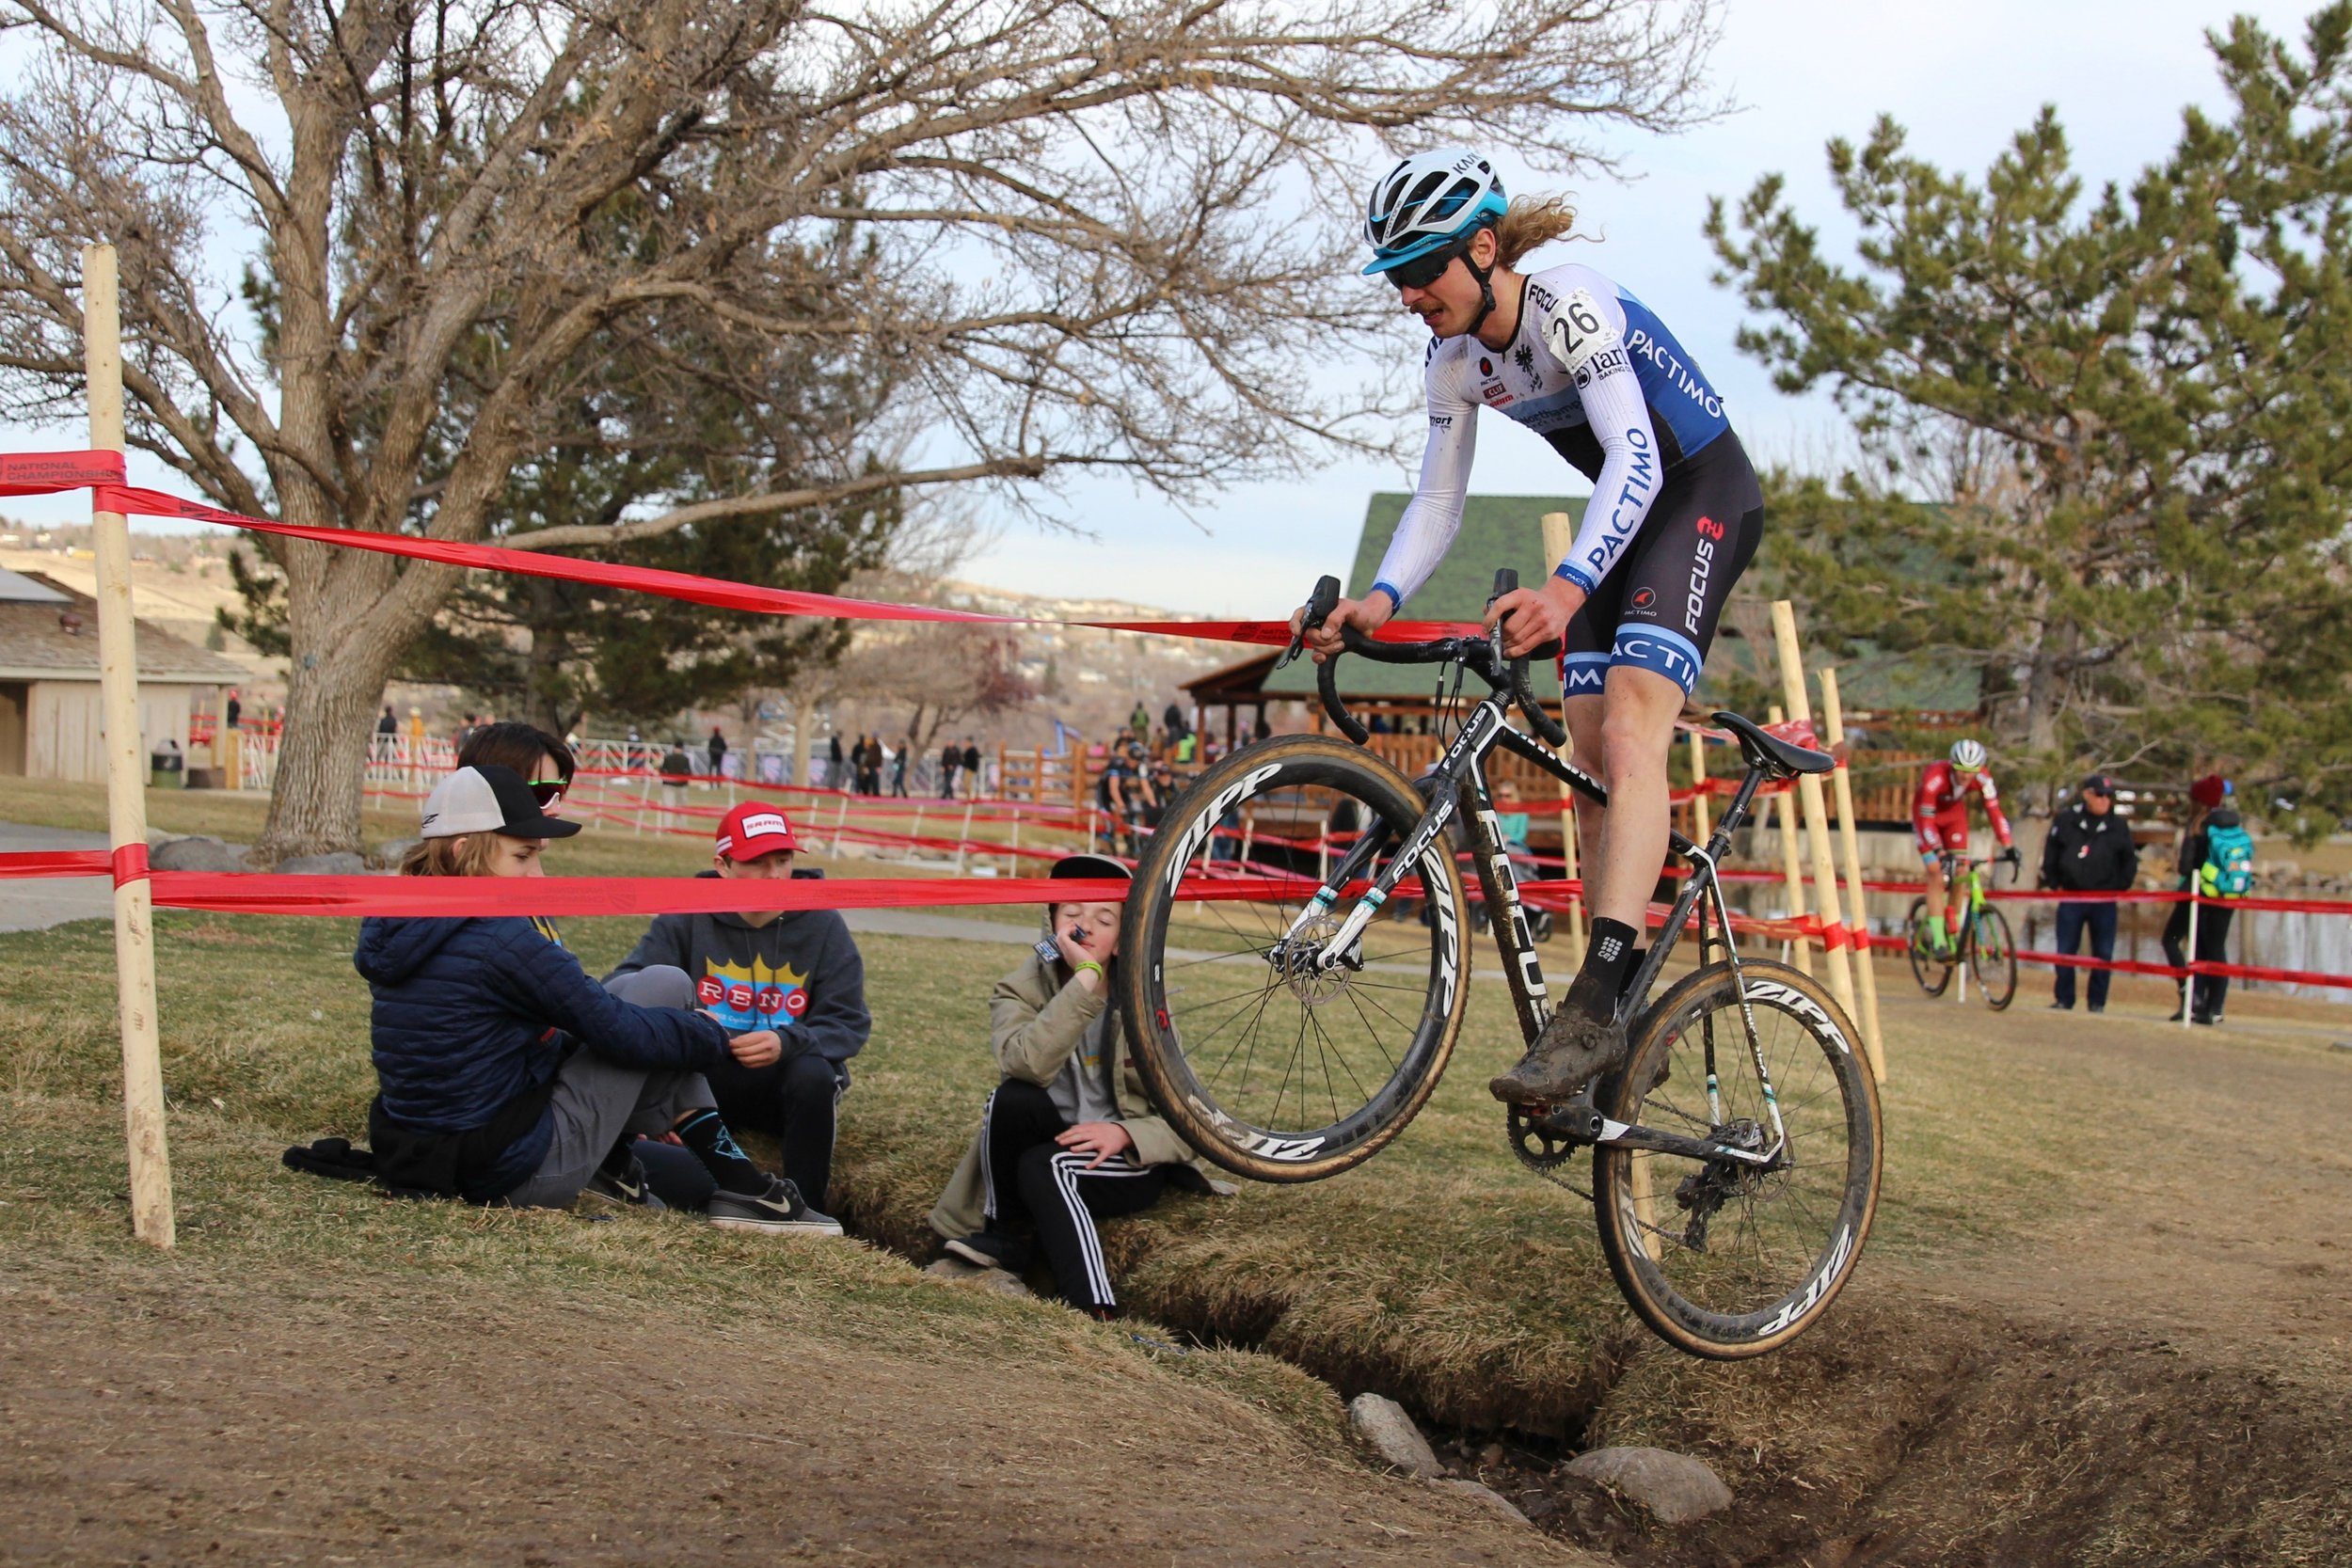 Smith jumps over the tricky ditch during Cyclocross National Championships in Reno, Nevada on Jan. 14, 2018. Photo by Vicky Sama.